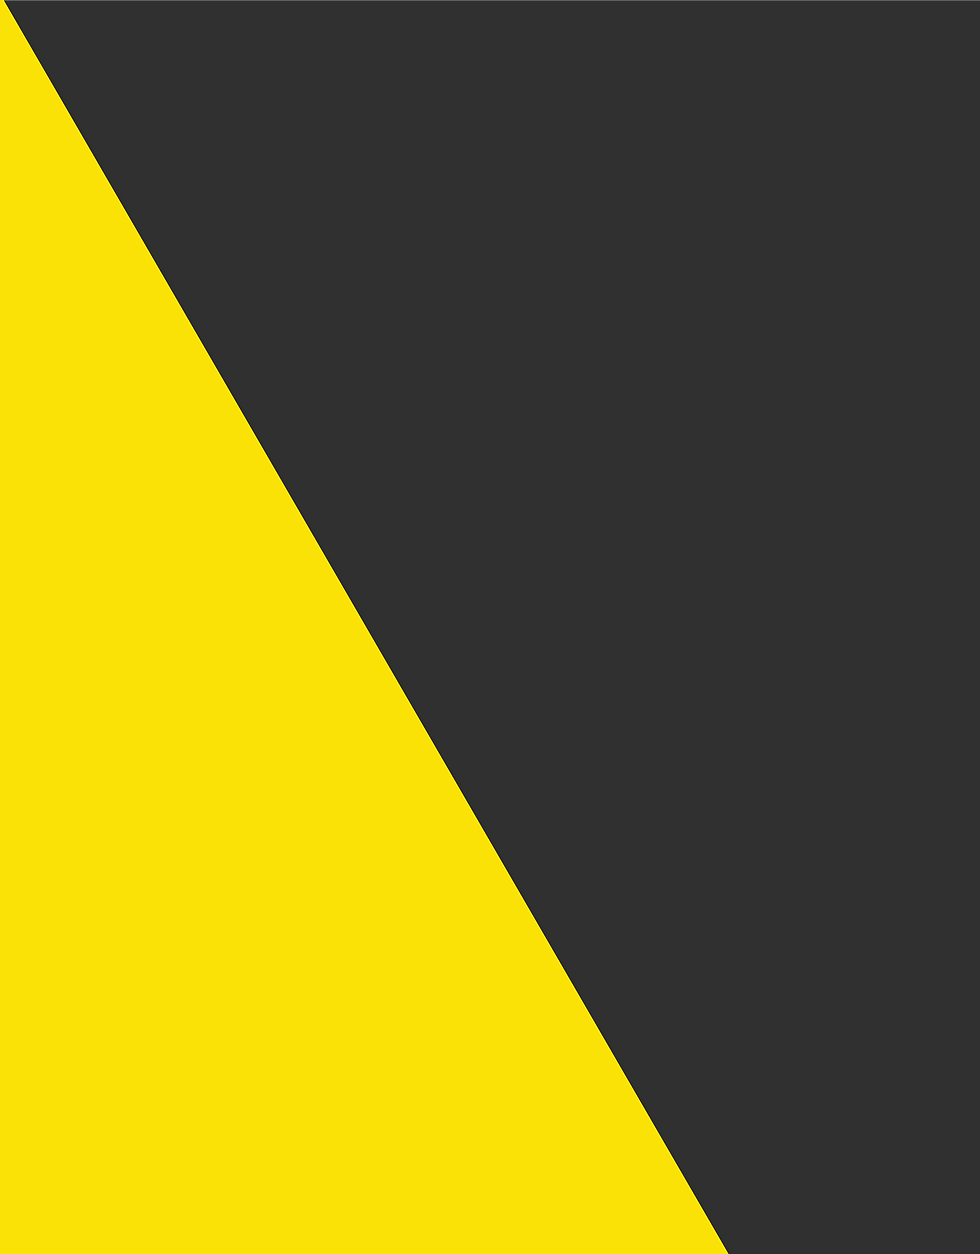 background_angled_yellow2.png